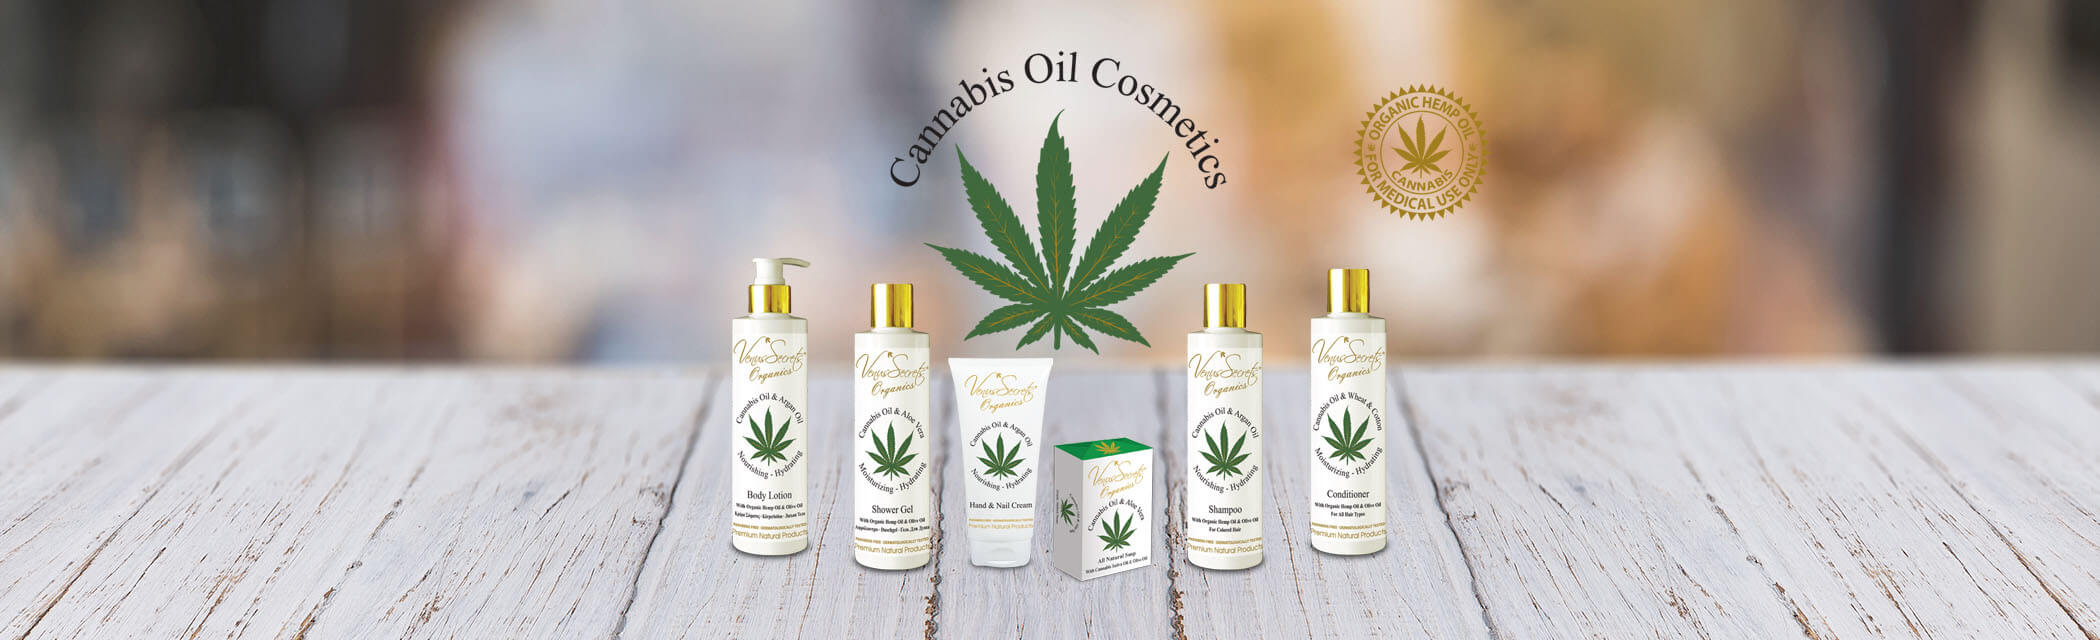 Venus Secrets Cannabis Oil Cosmetics